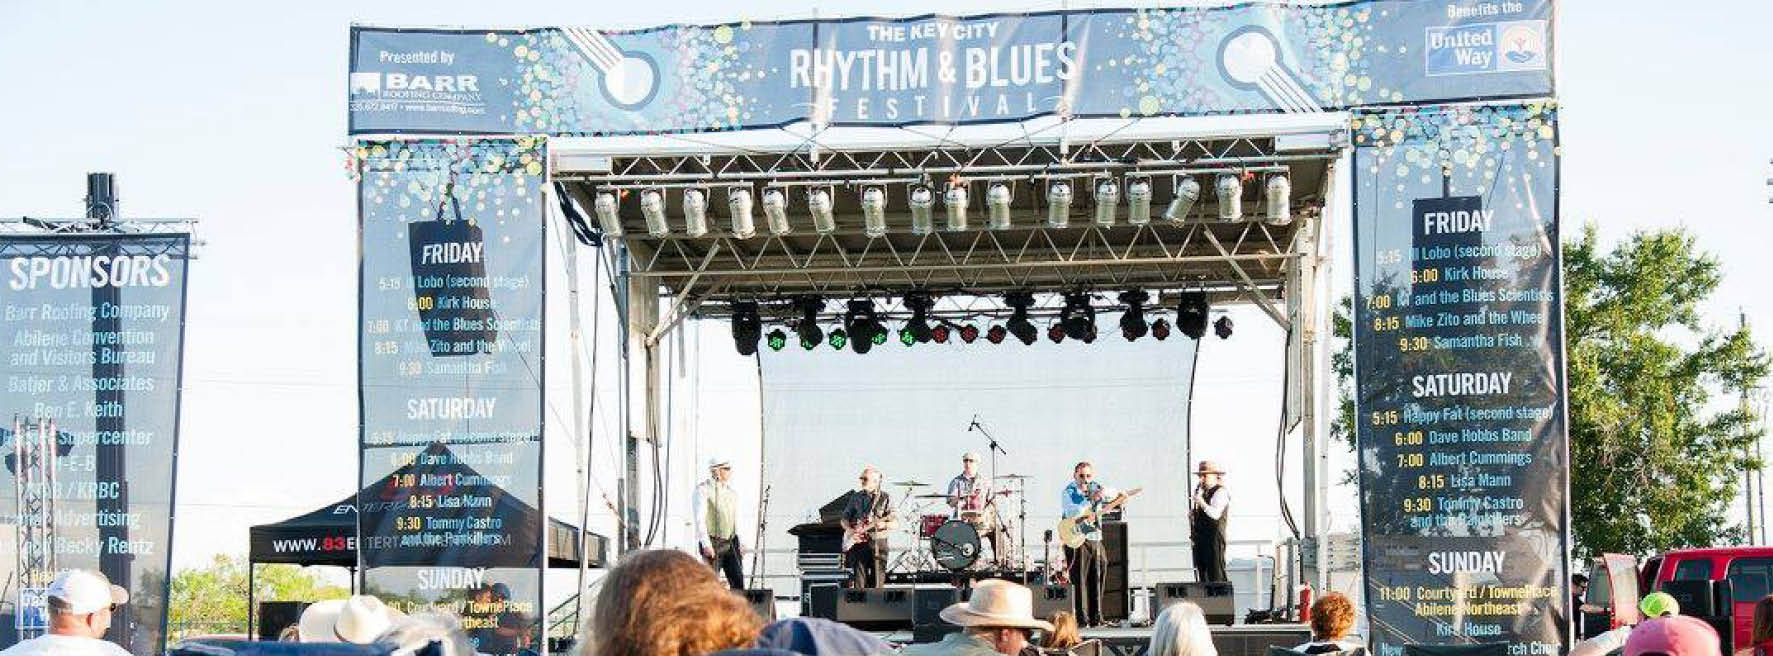 Bureau Zito Key City Rhythm Blues Festival A People Party Productions